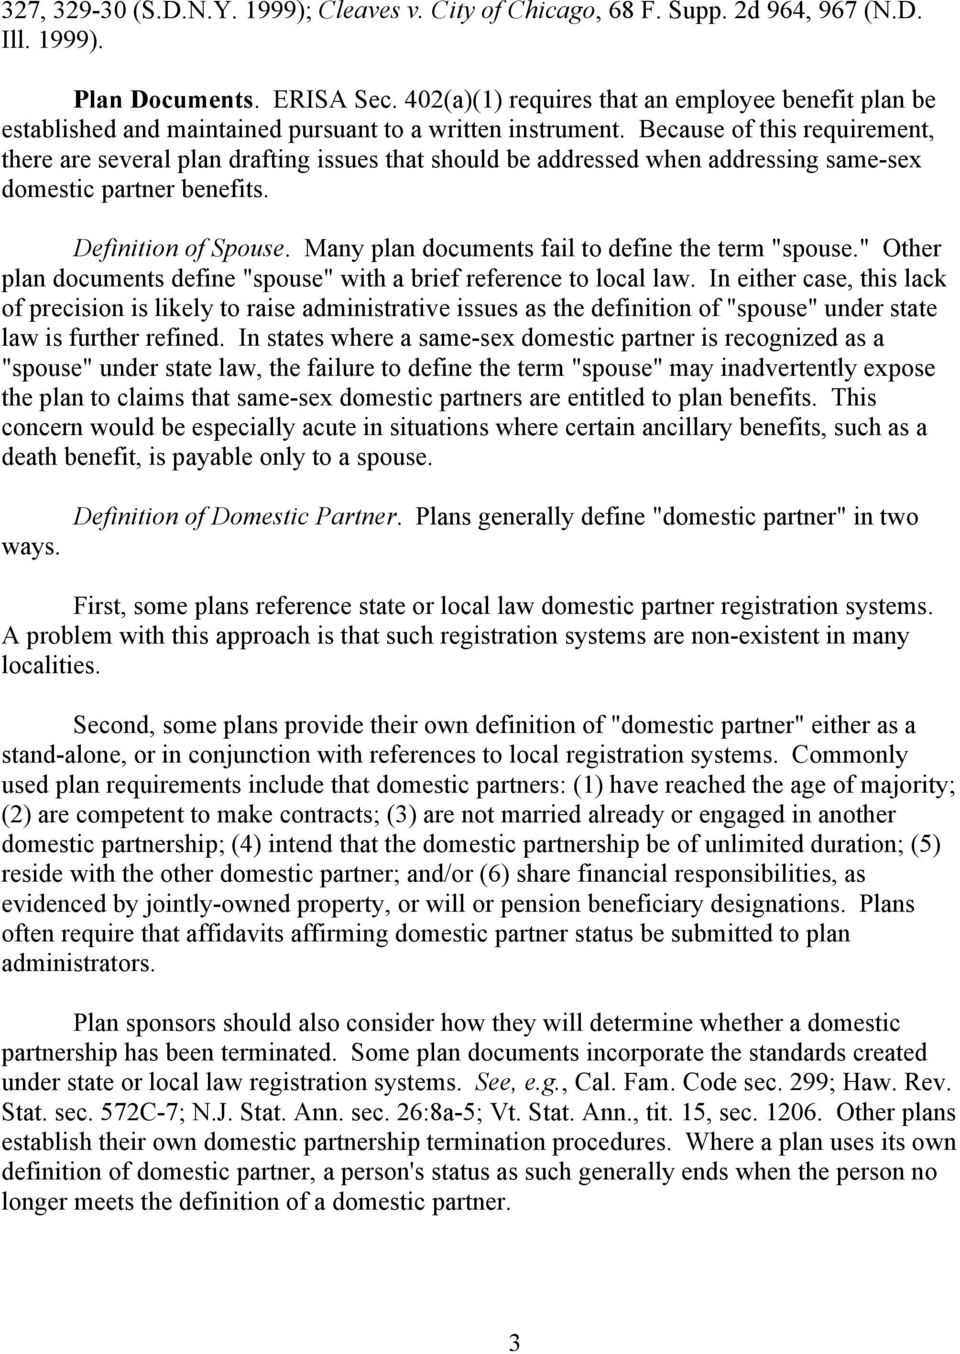 same-sex domestic partner benefits current legal and plan drafting